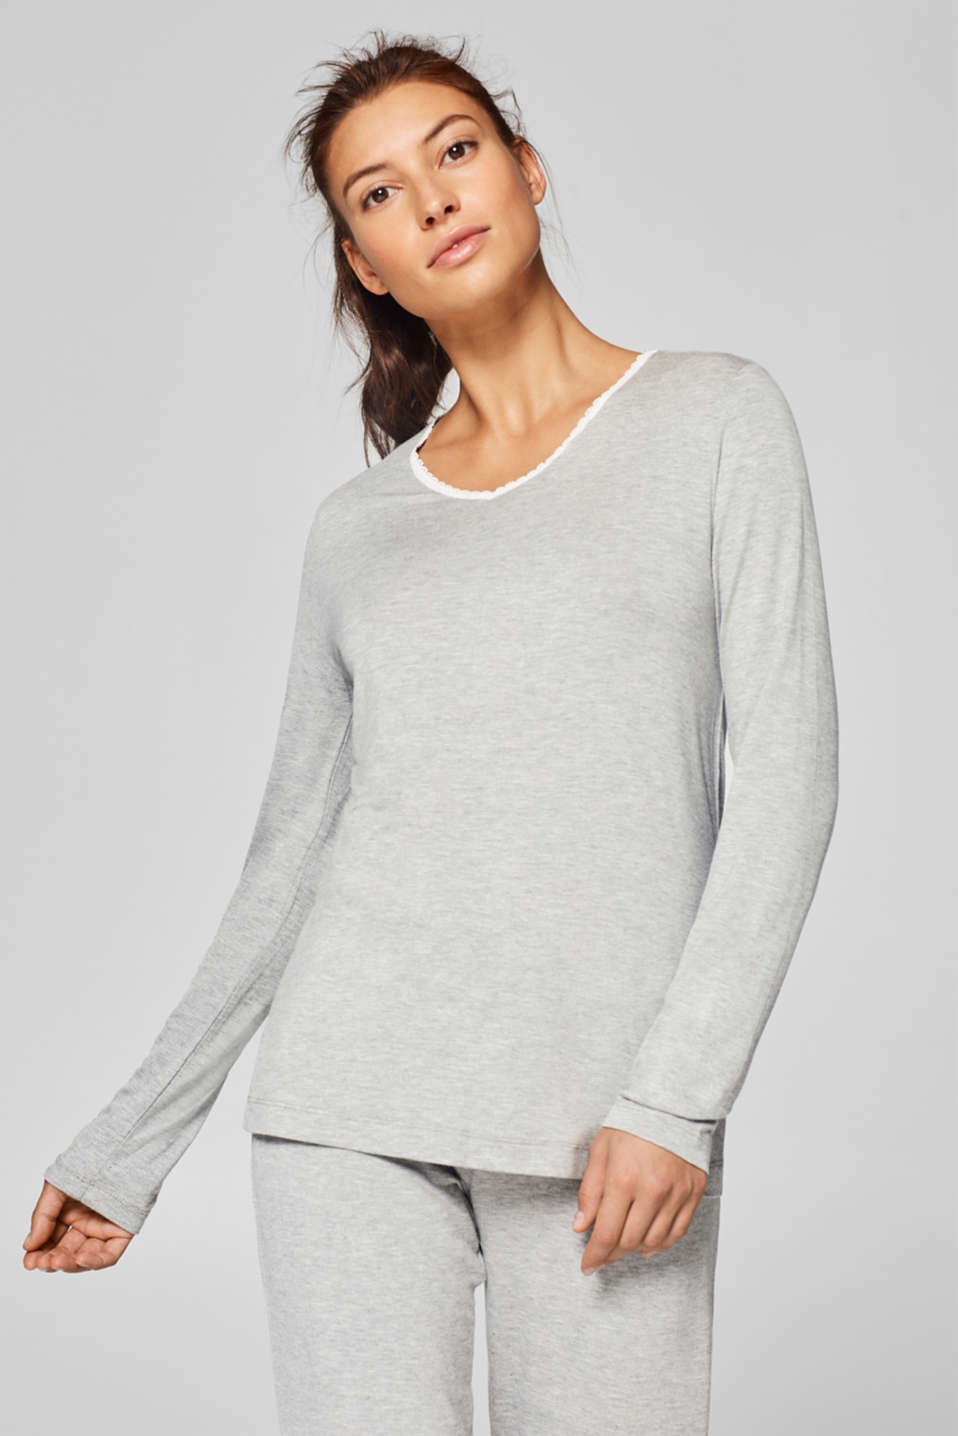 Esprit - Stretch long sleeve top trimmed with lace